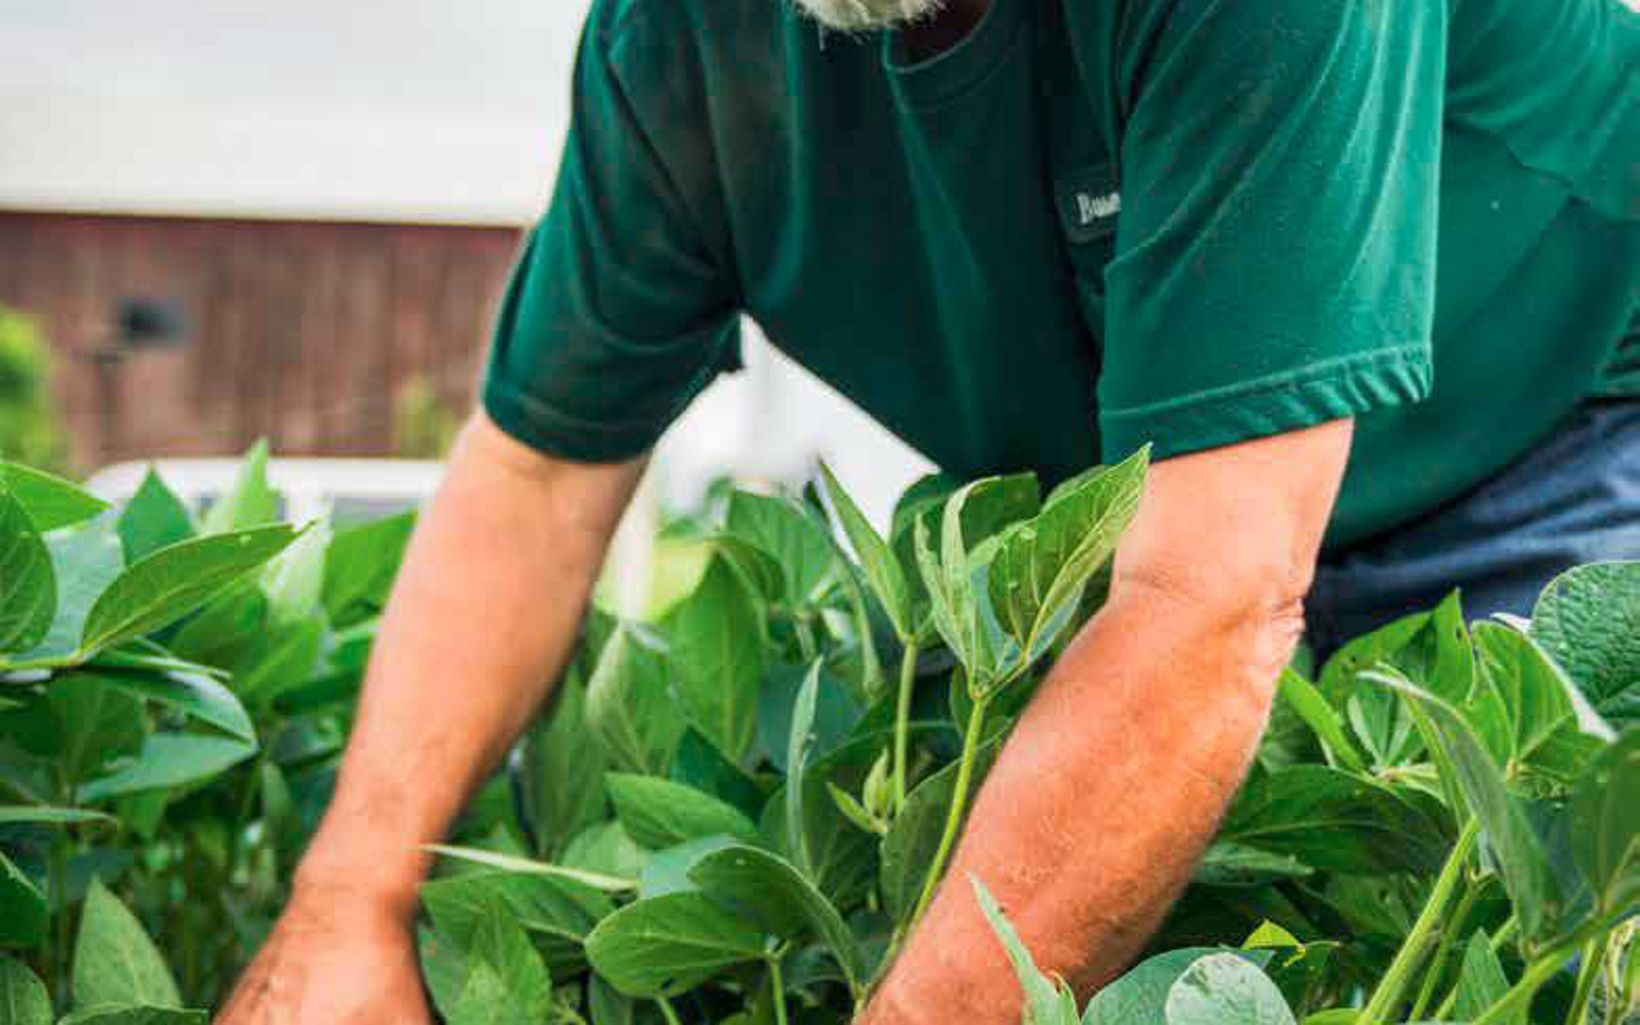 A man in a green shirt checks on growing crops.